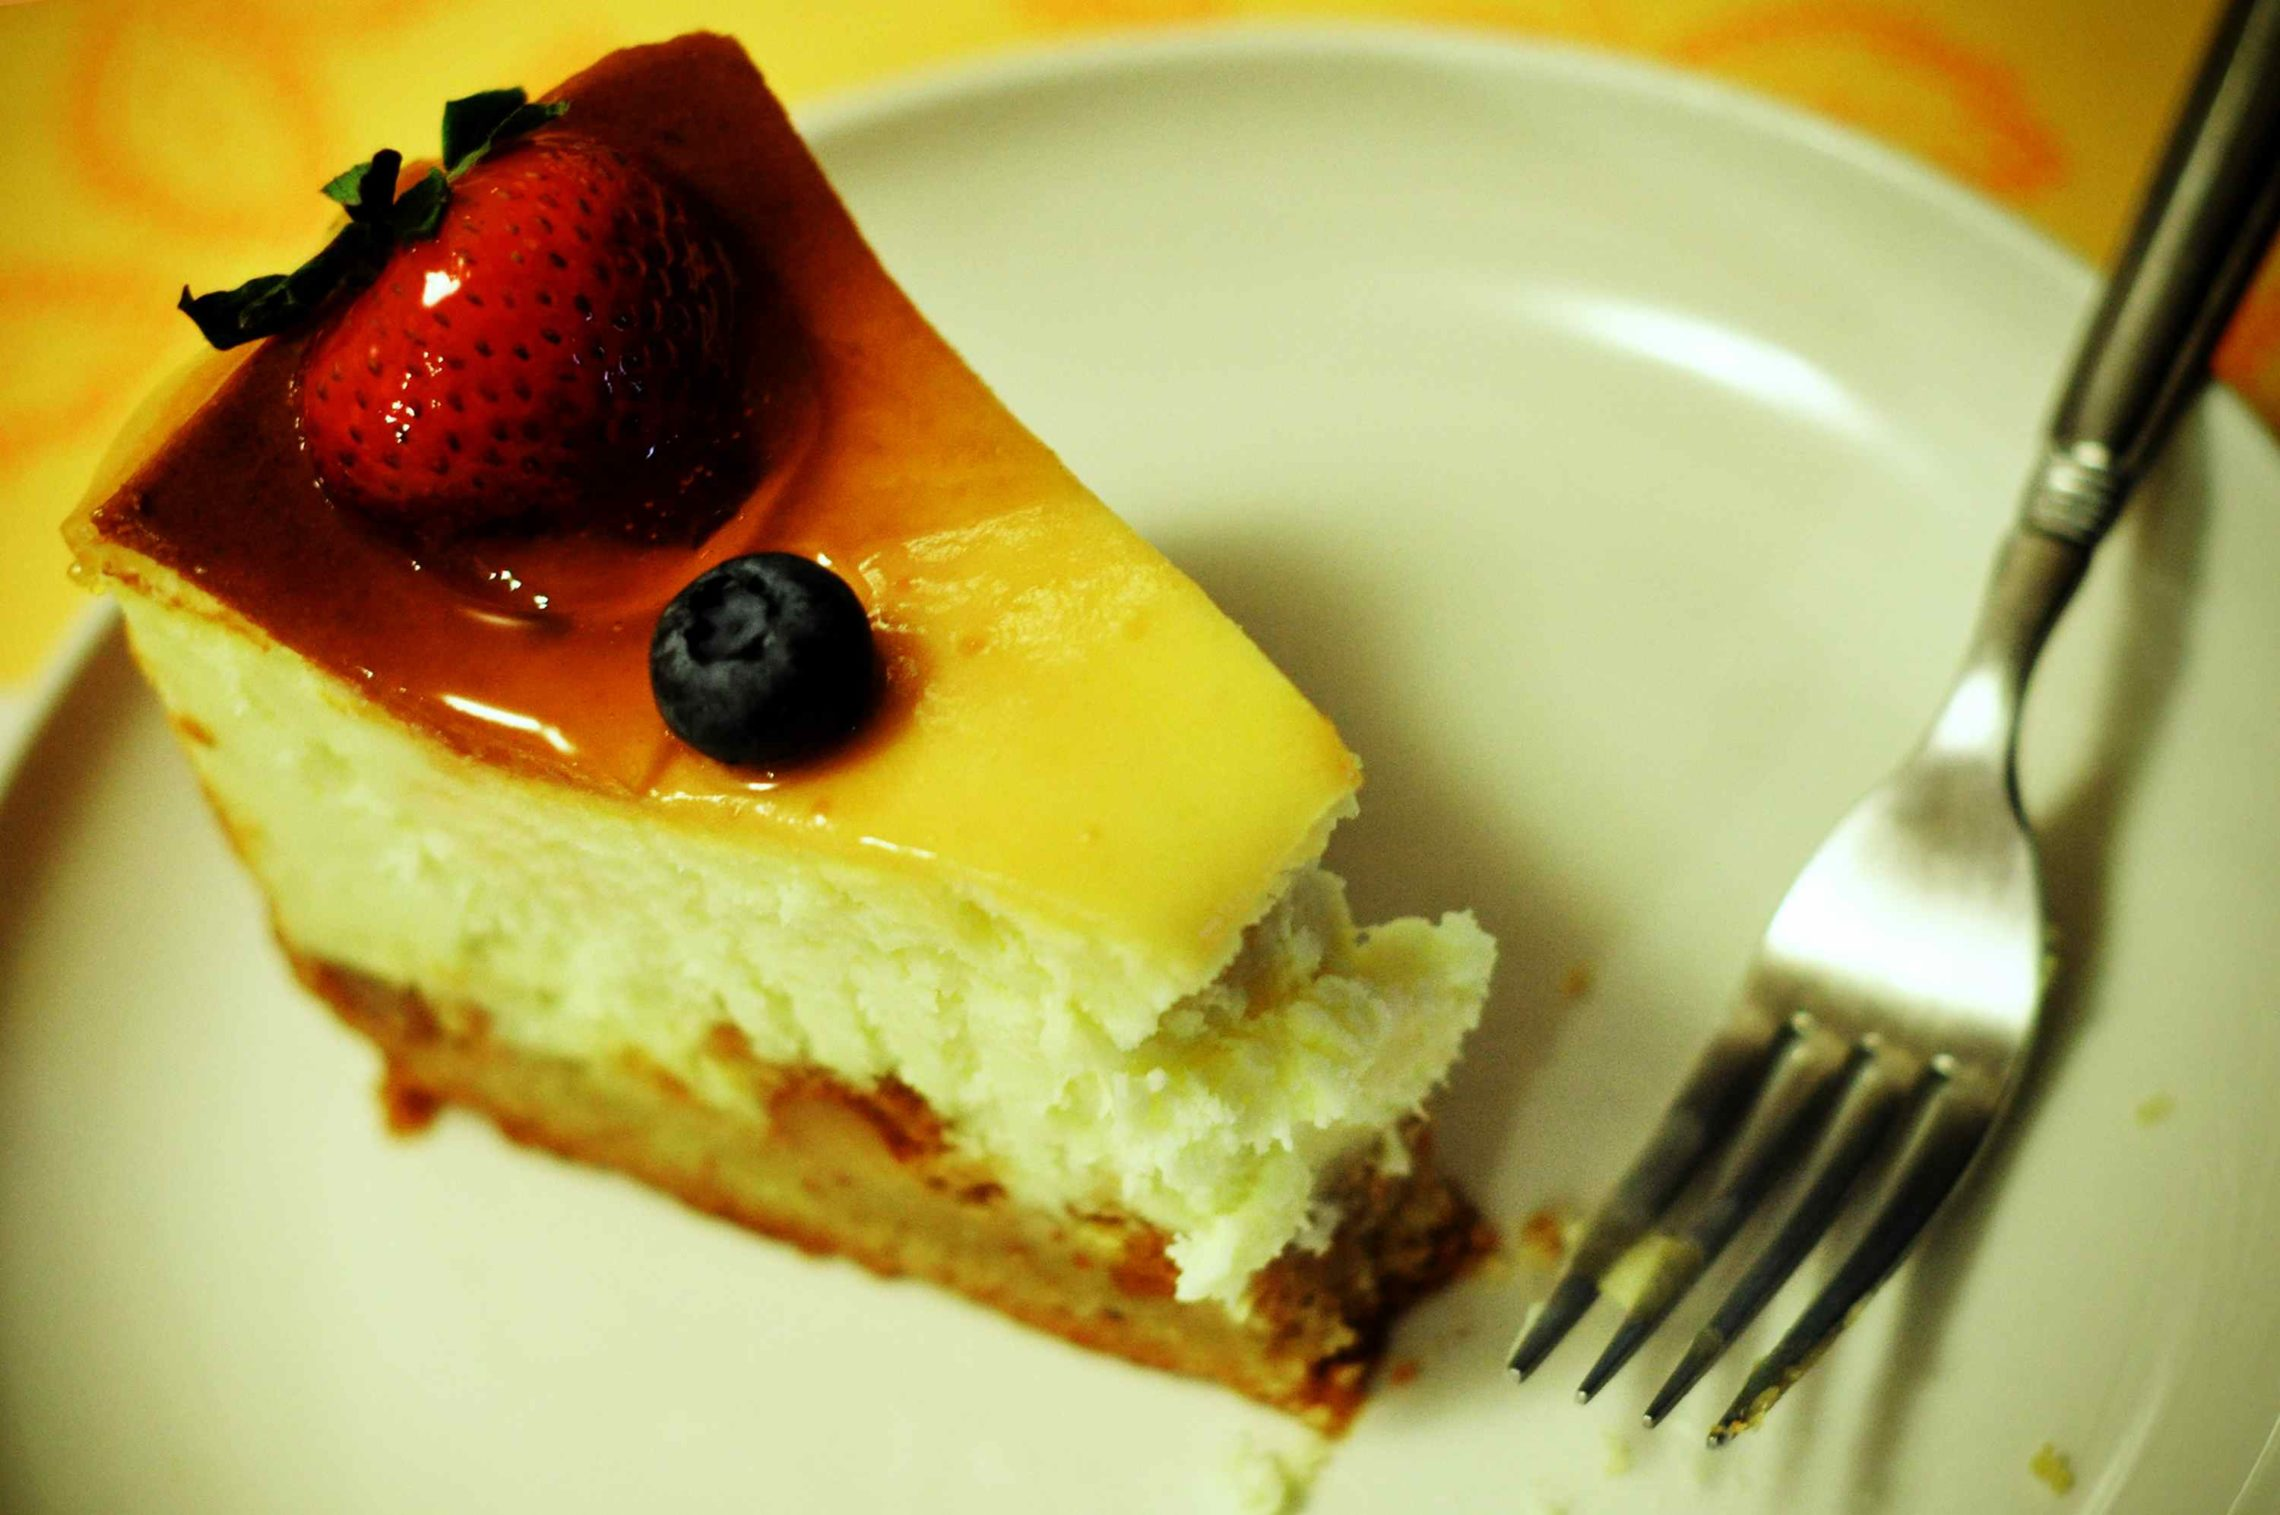 The Perfect Cheesecake – Pan'e Dolci Bakery, Fort Lauderdale, FL